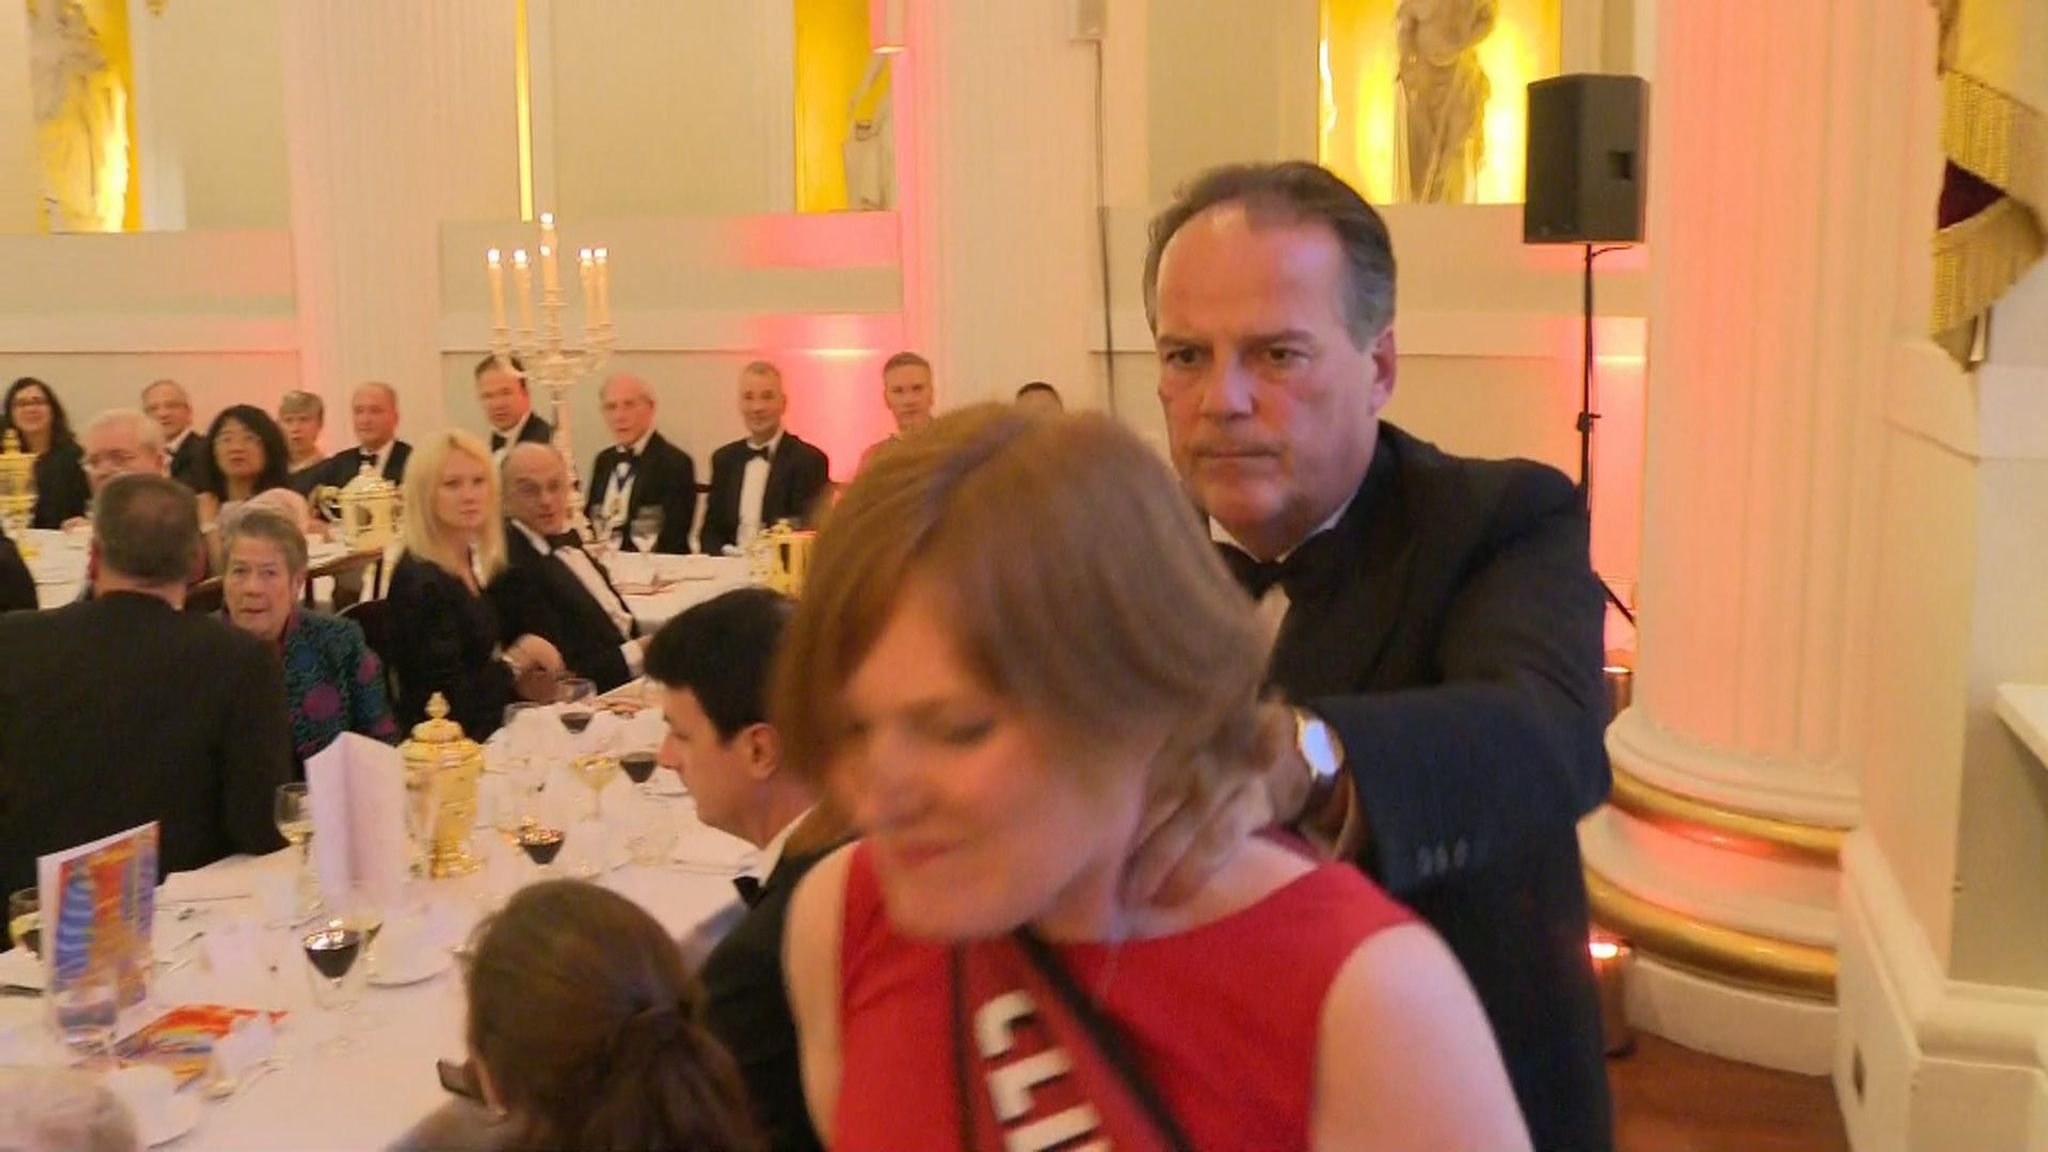 Mark Field: Former Conservative minister who grabbed protester at Mansion House to quit as MP